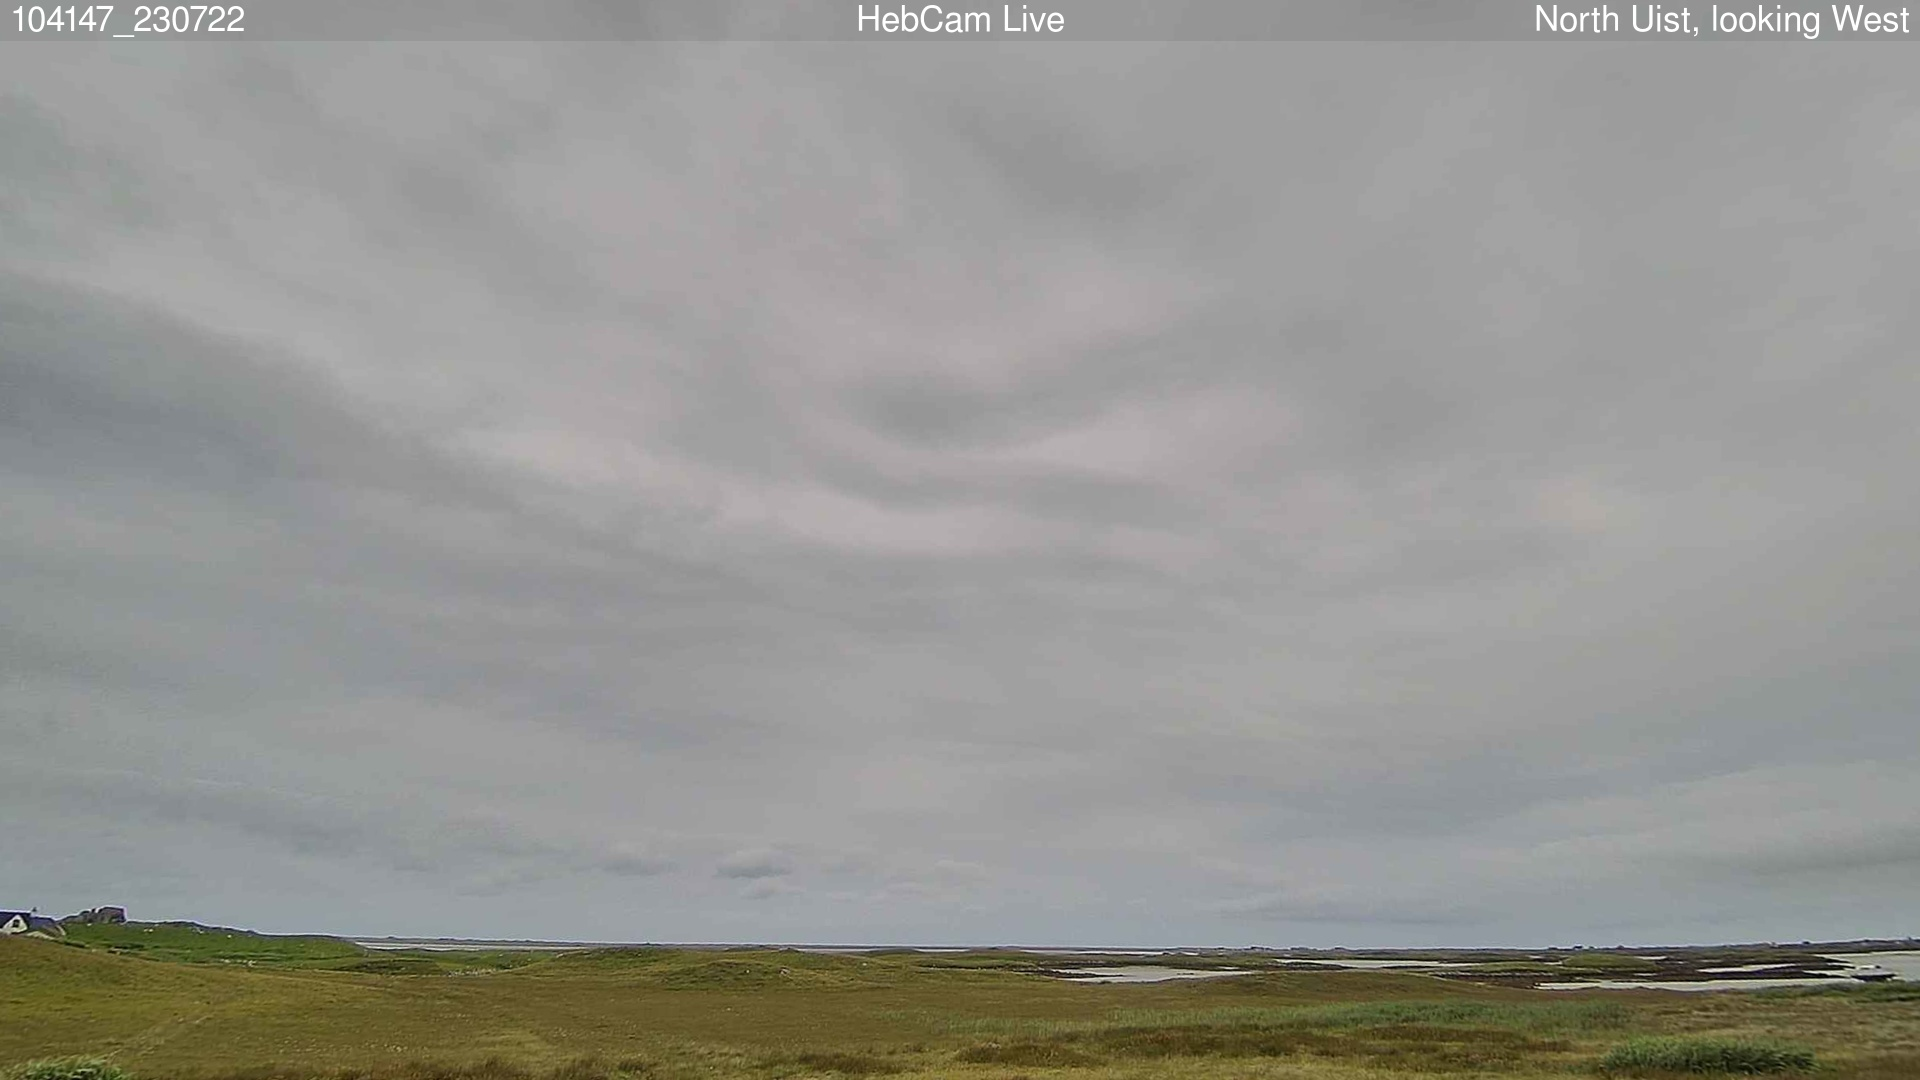 Live HebCam, image updates every 15 seconds